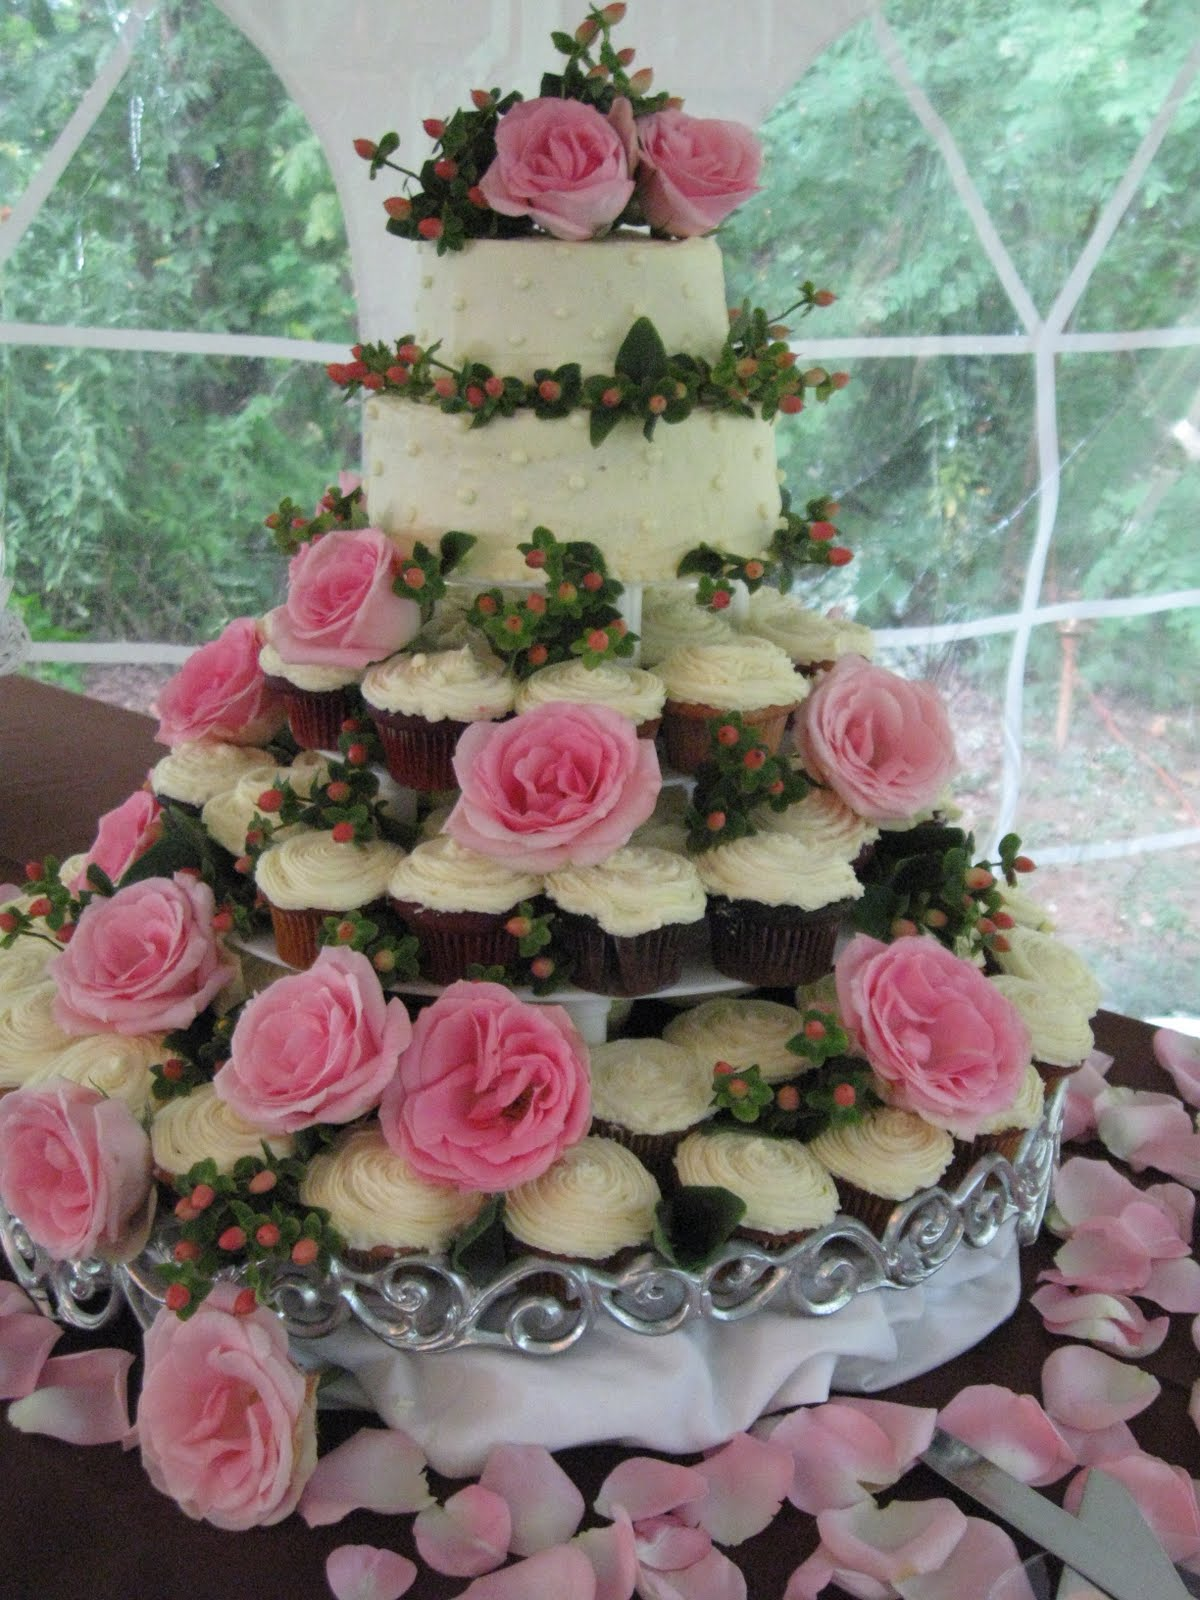 chef tony catering wedding cake cupcakes. Black Bedroom Furniture Sets. Home Design Ideas